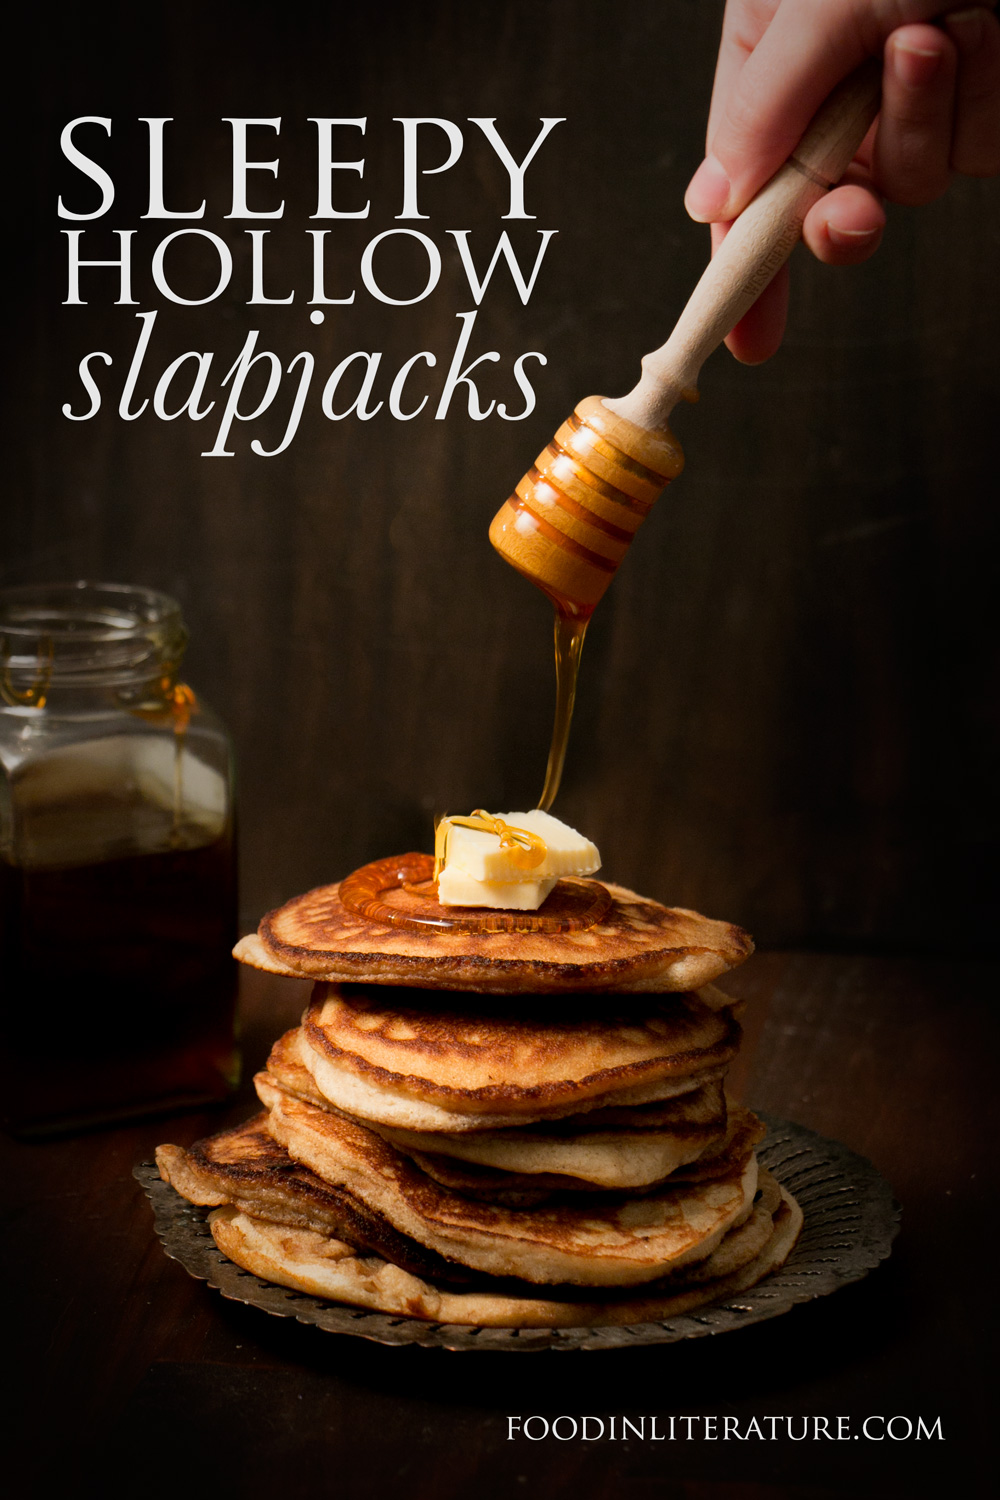 Start your October mornings off right with Sleepy Hollow slapjacks. Not only are they super easy for only a few ingredients, they're gluten free too!